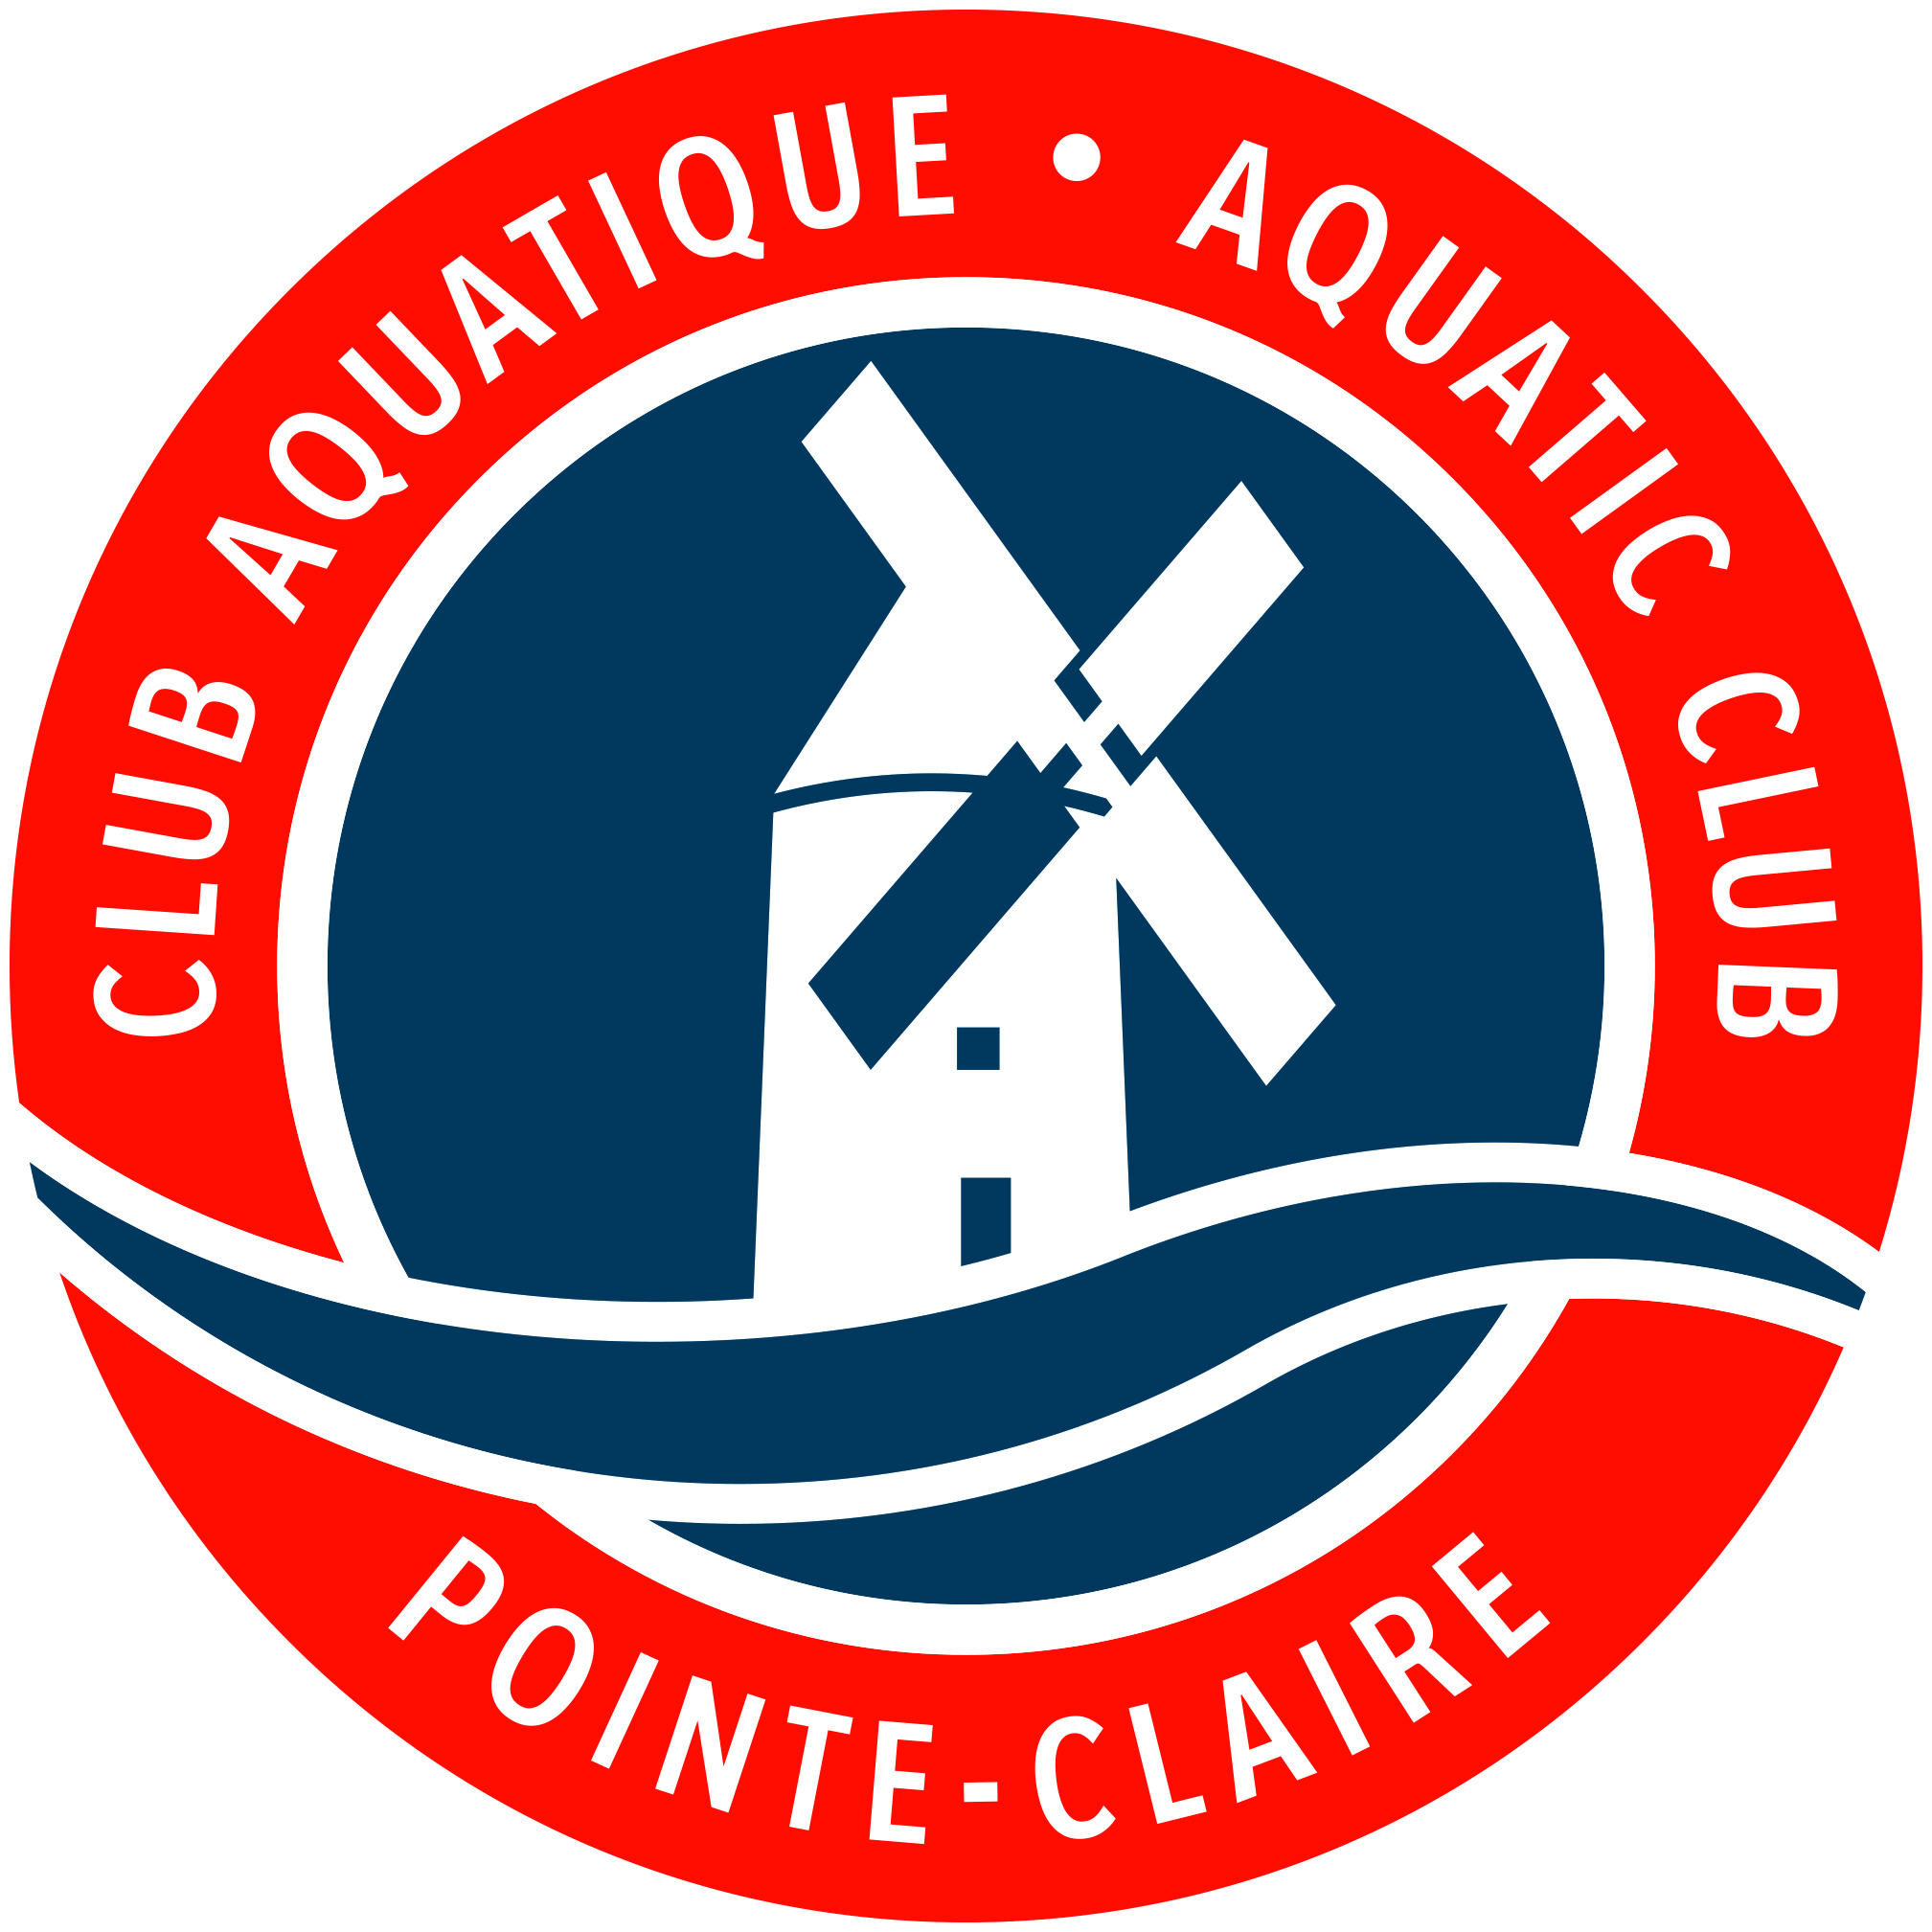 Club Aquatique - Aquatic Club Pointe-Claire